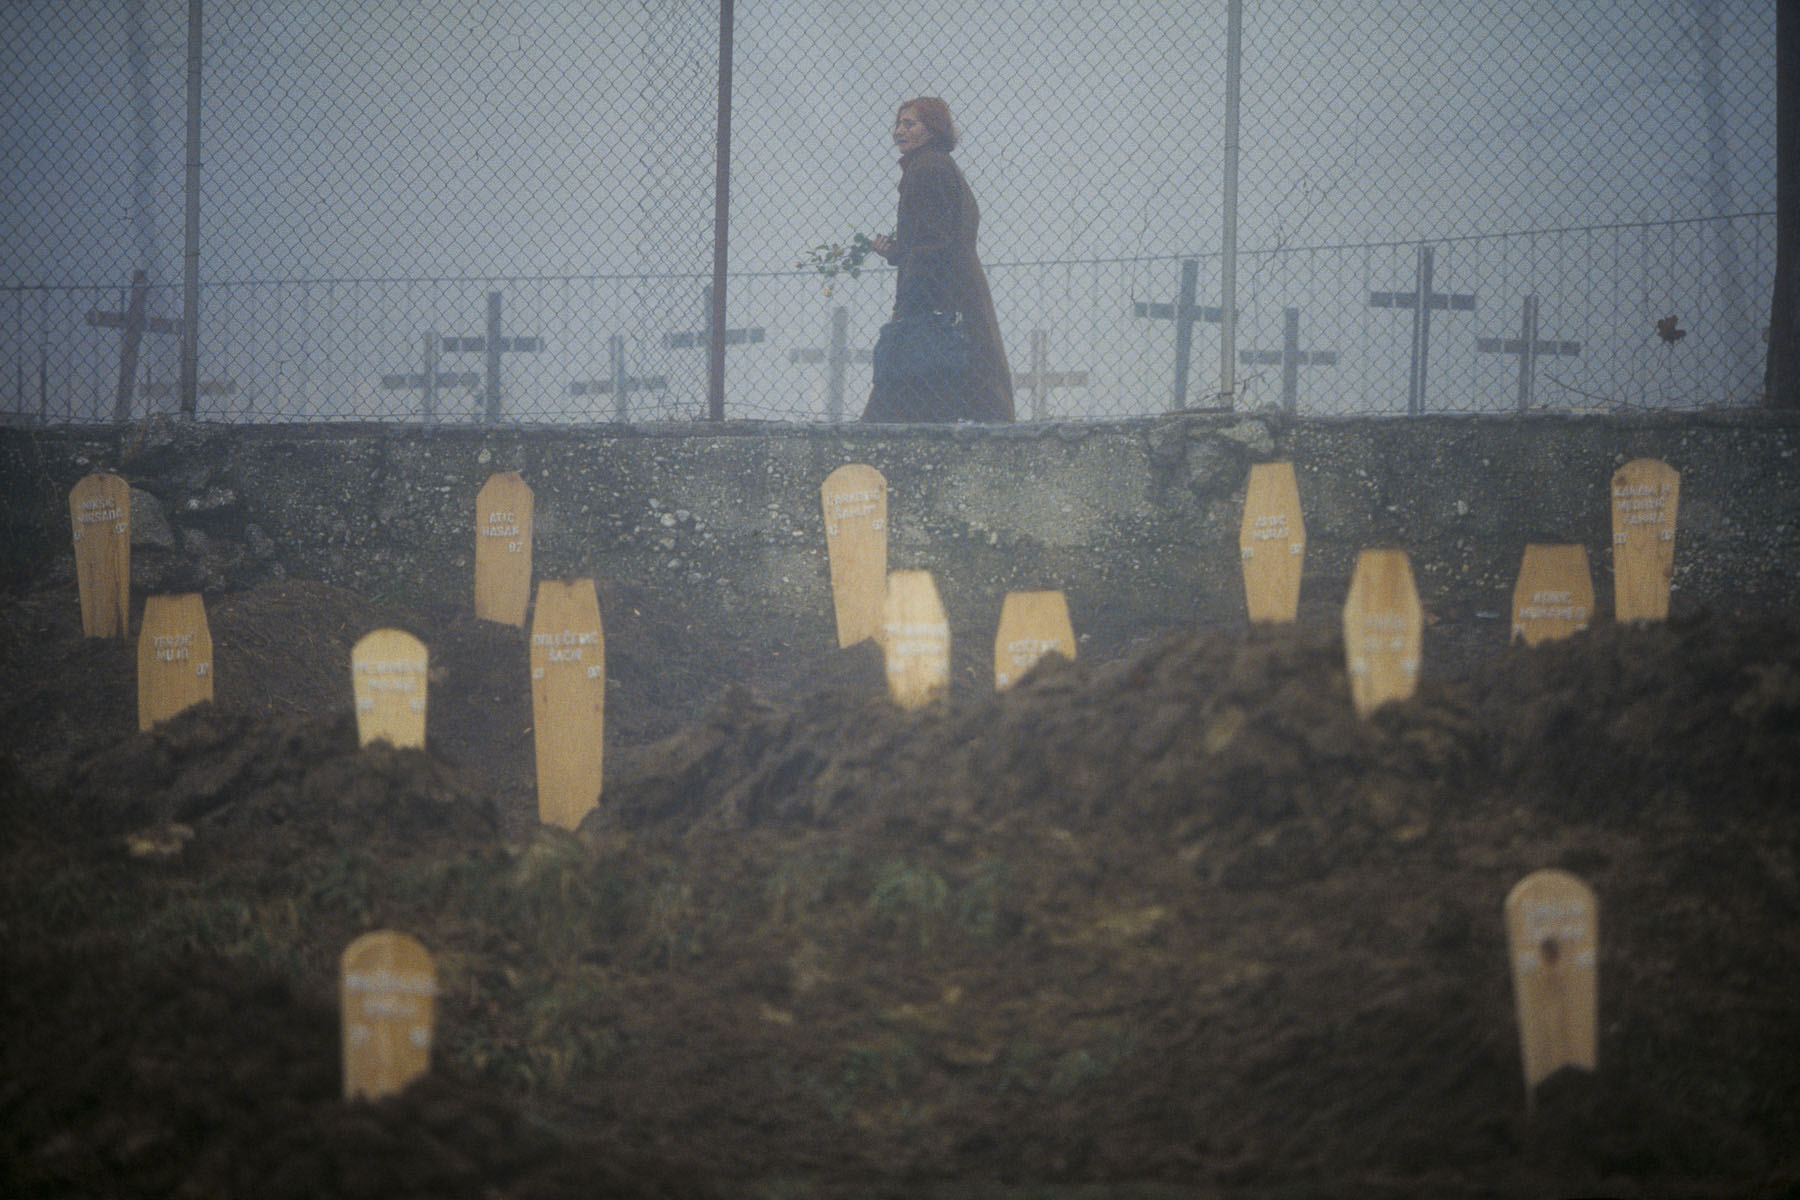 An inhabitant of Sarajevo walking between the Christian and Muslim cemeteries dug in sports grounds near the Olympic stadium in December 1992